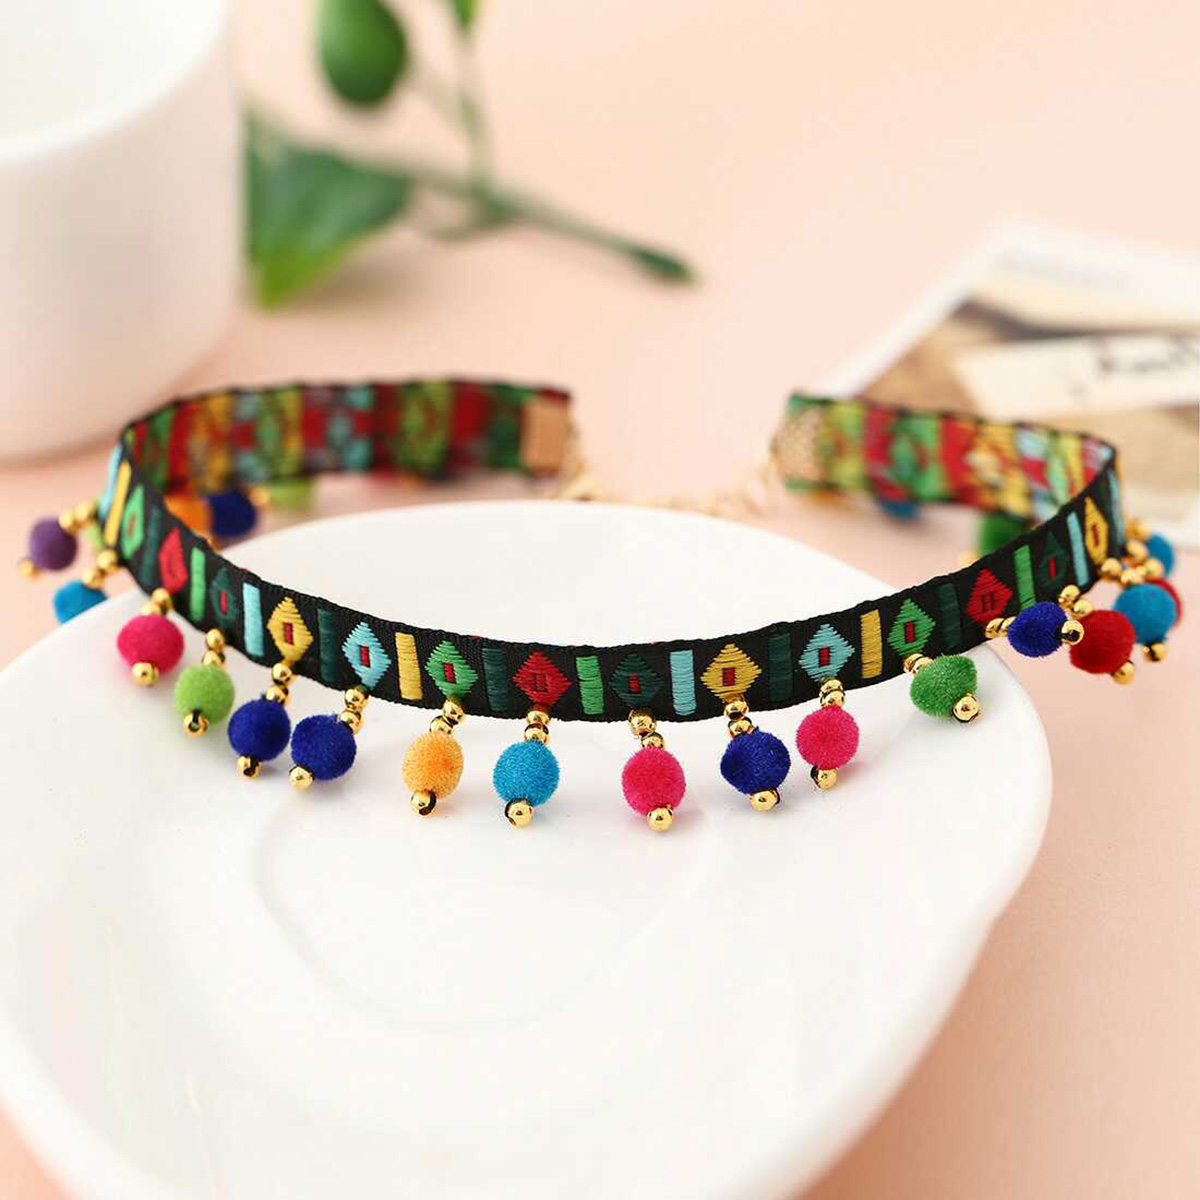 Vintage Ethnic Choker Necklace Handmade Embroidery Tassel Colorful Balls Pendants Necklace Tribe Statement Collares Jewelry